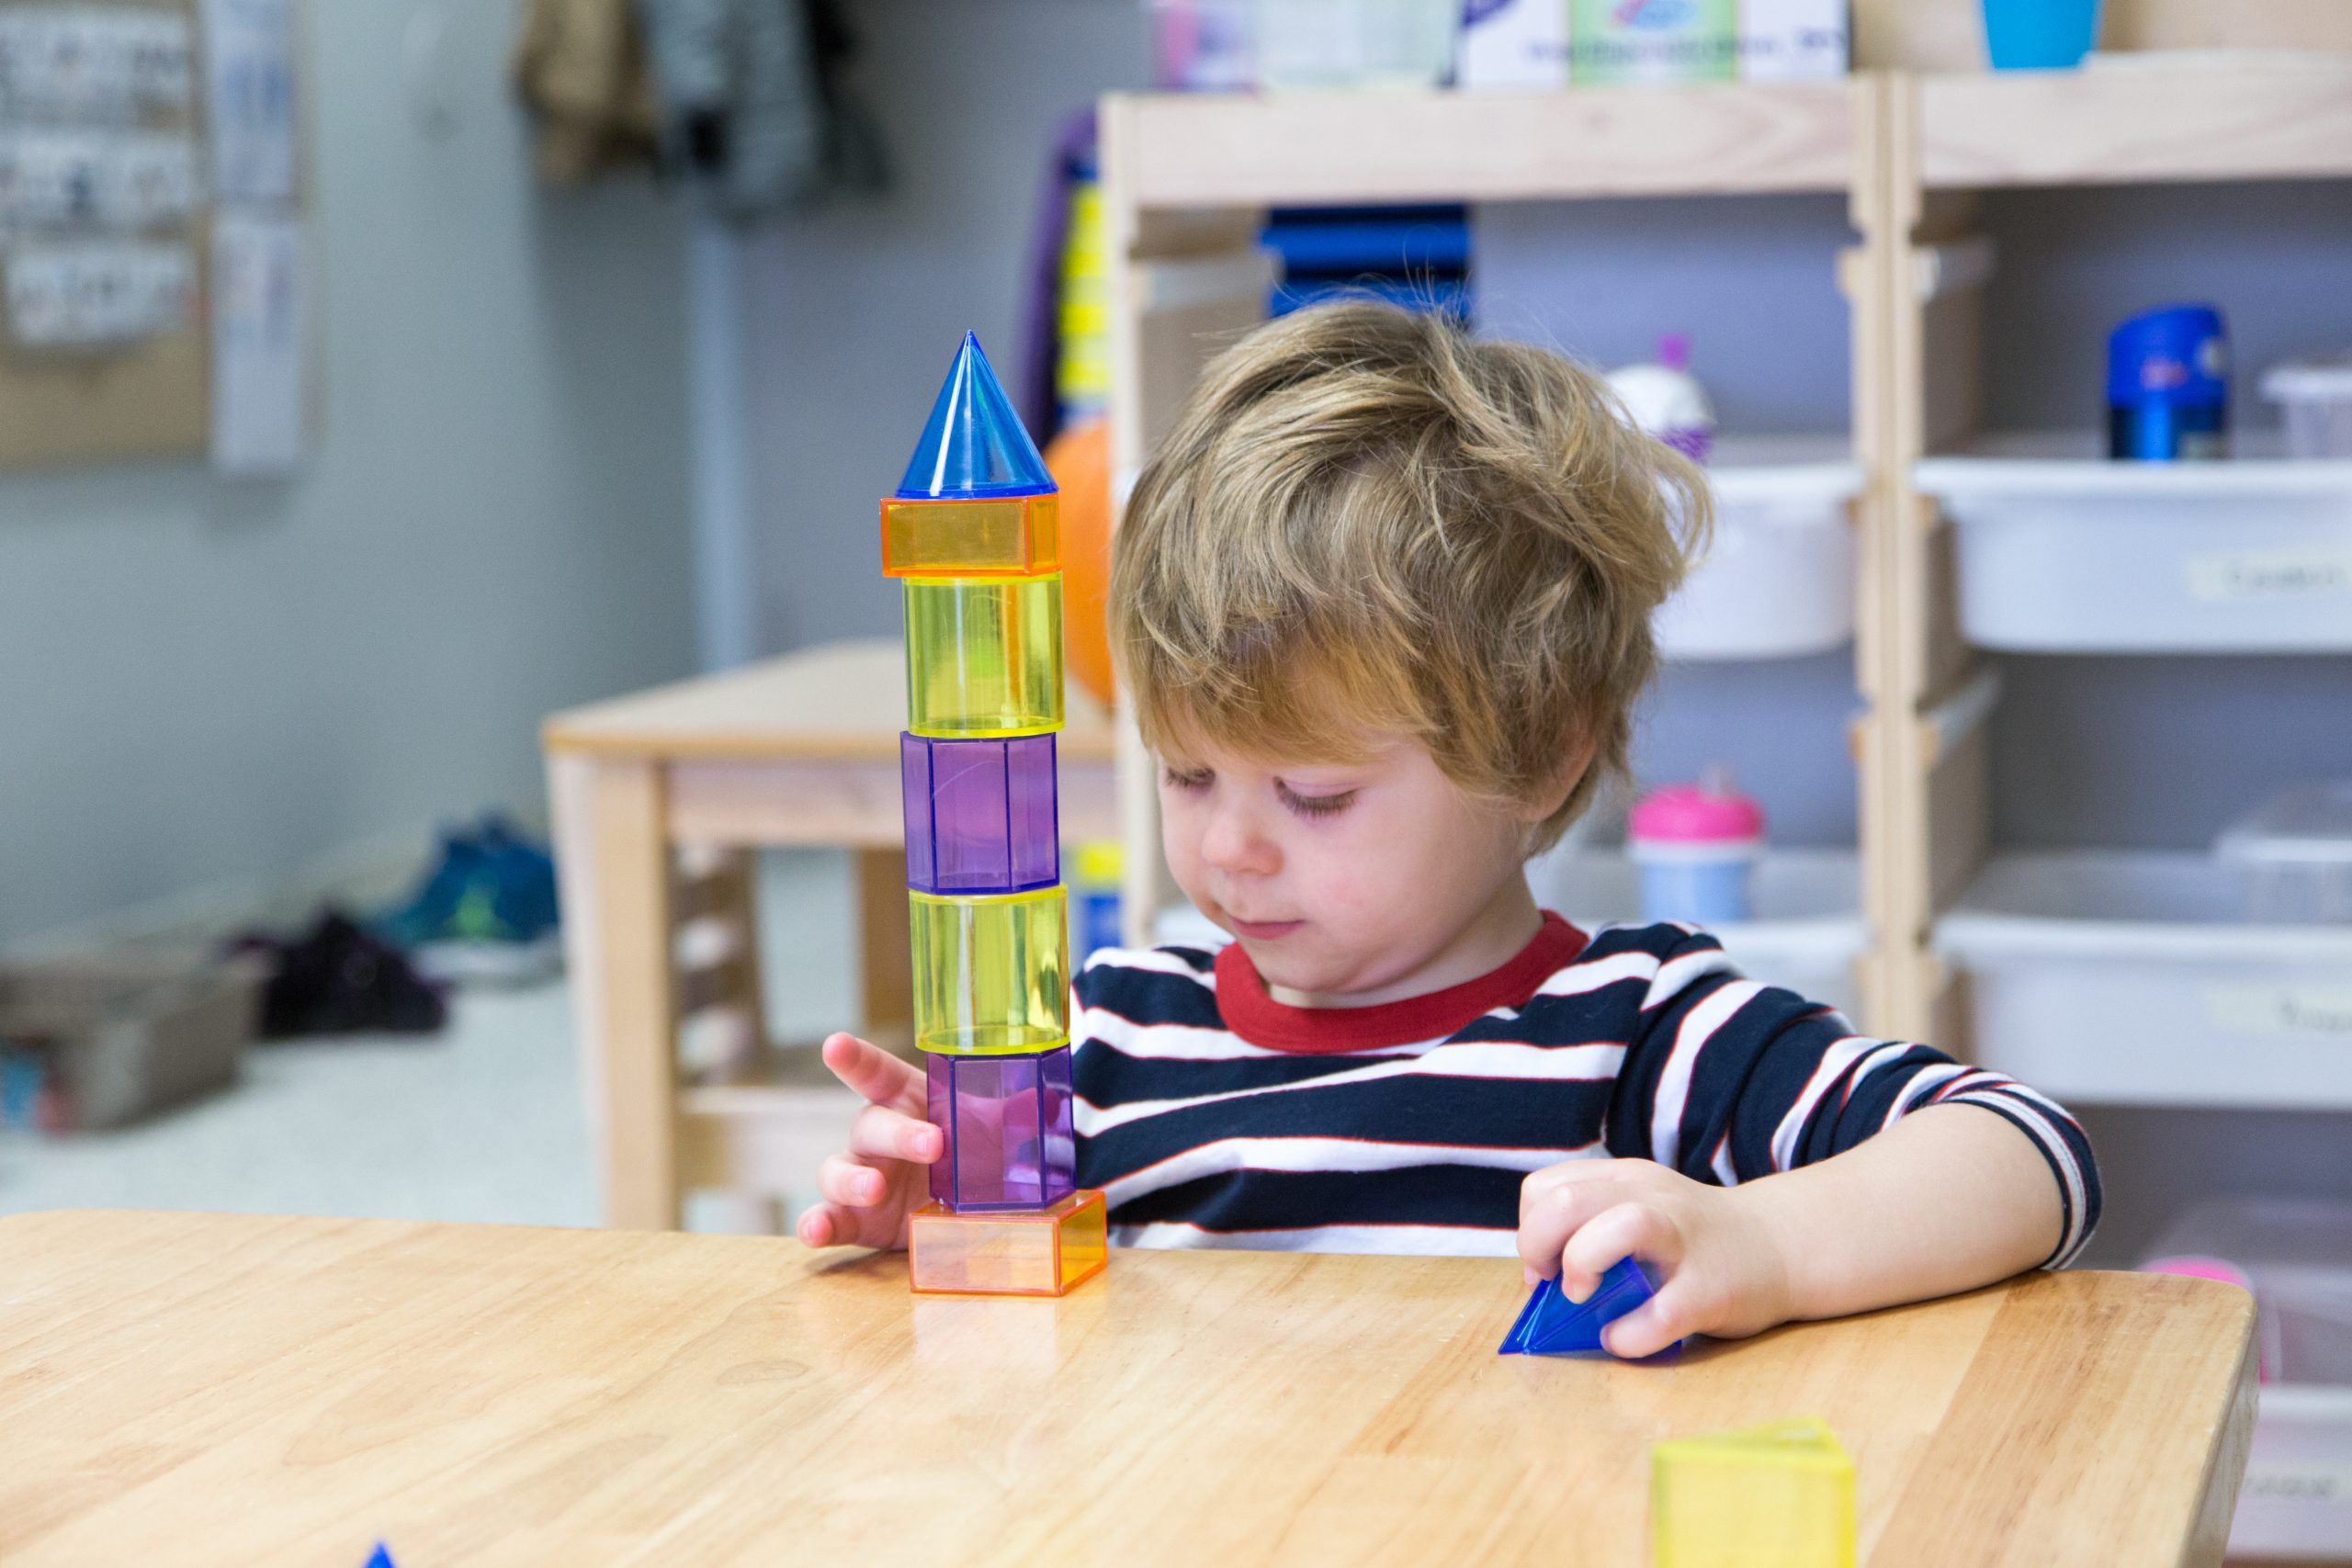 A child playing with plastic geometric block toys